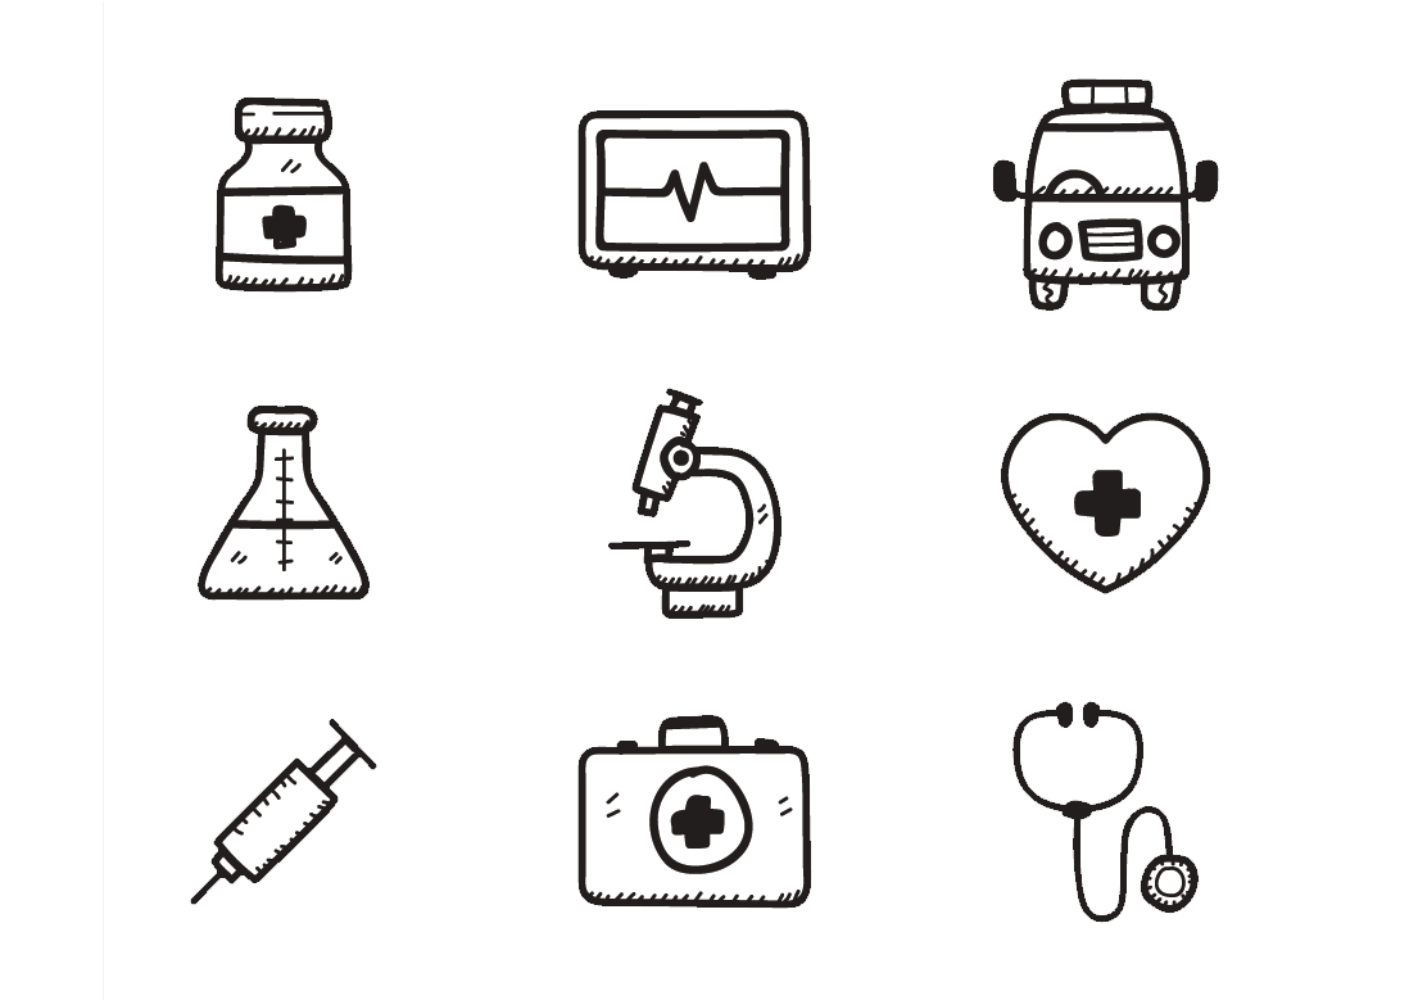 banner black and white download Health drawing. Care icon research syringe